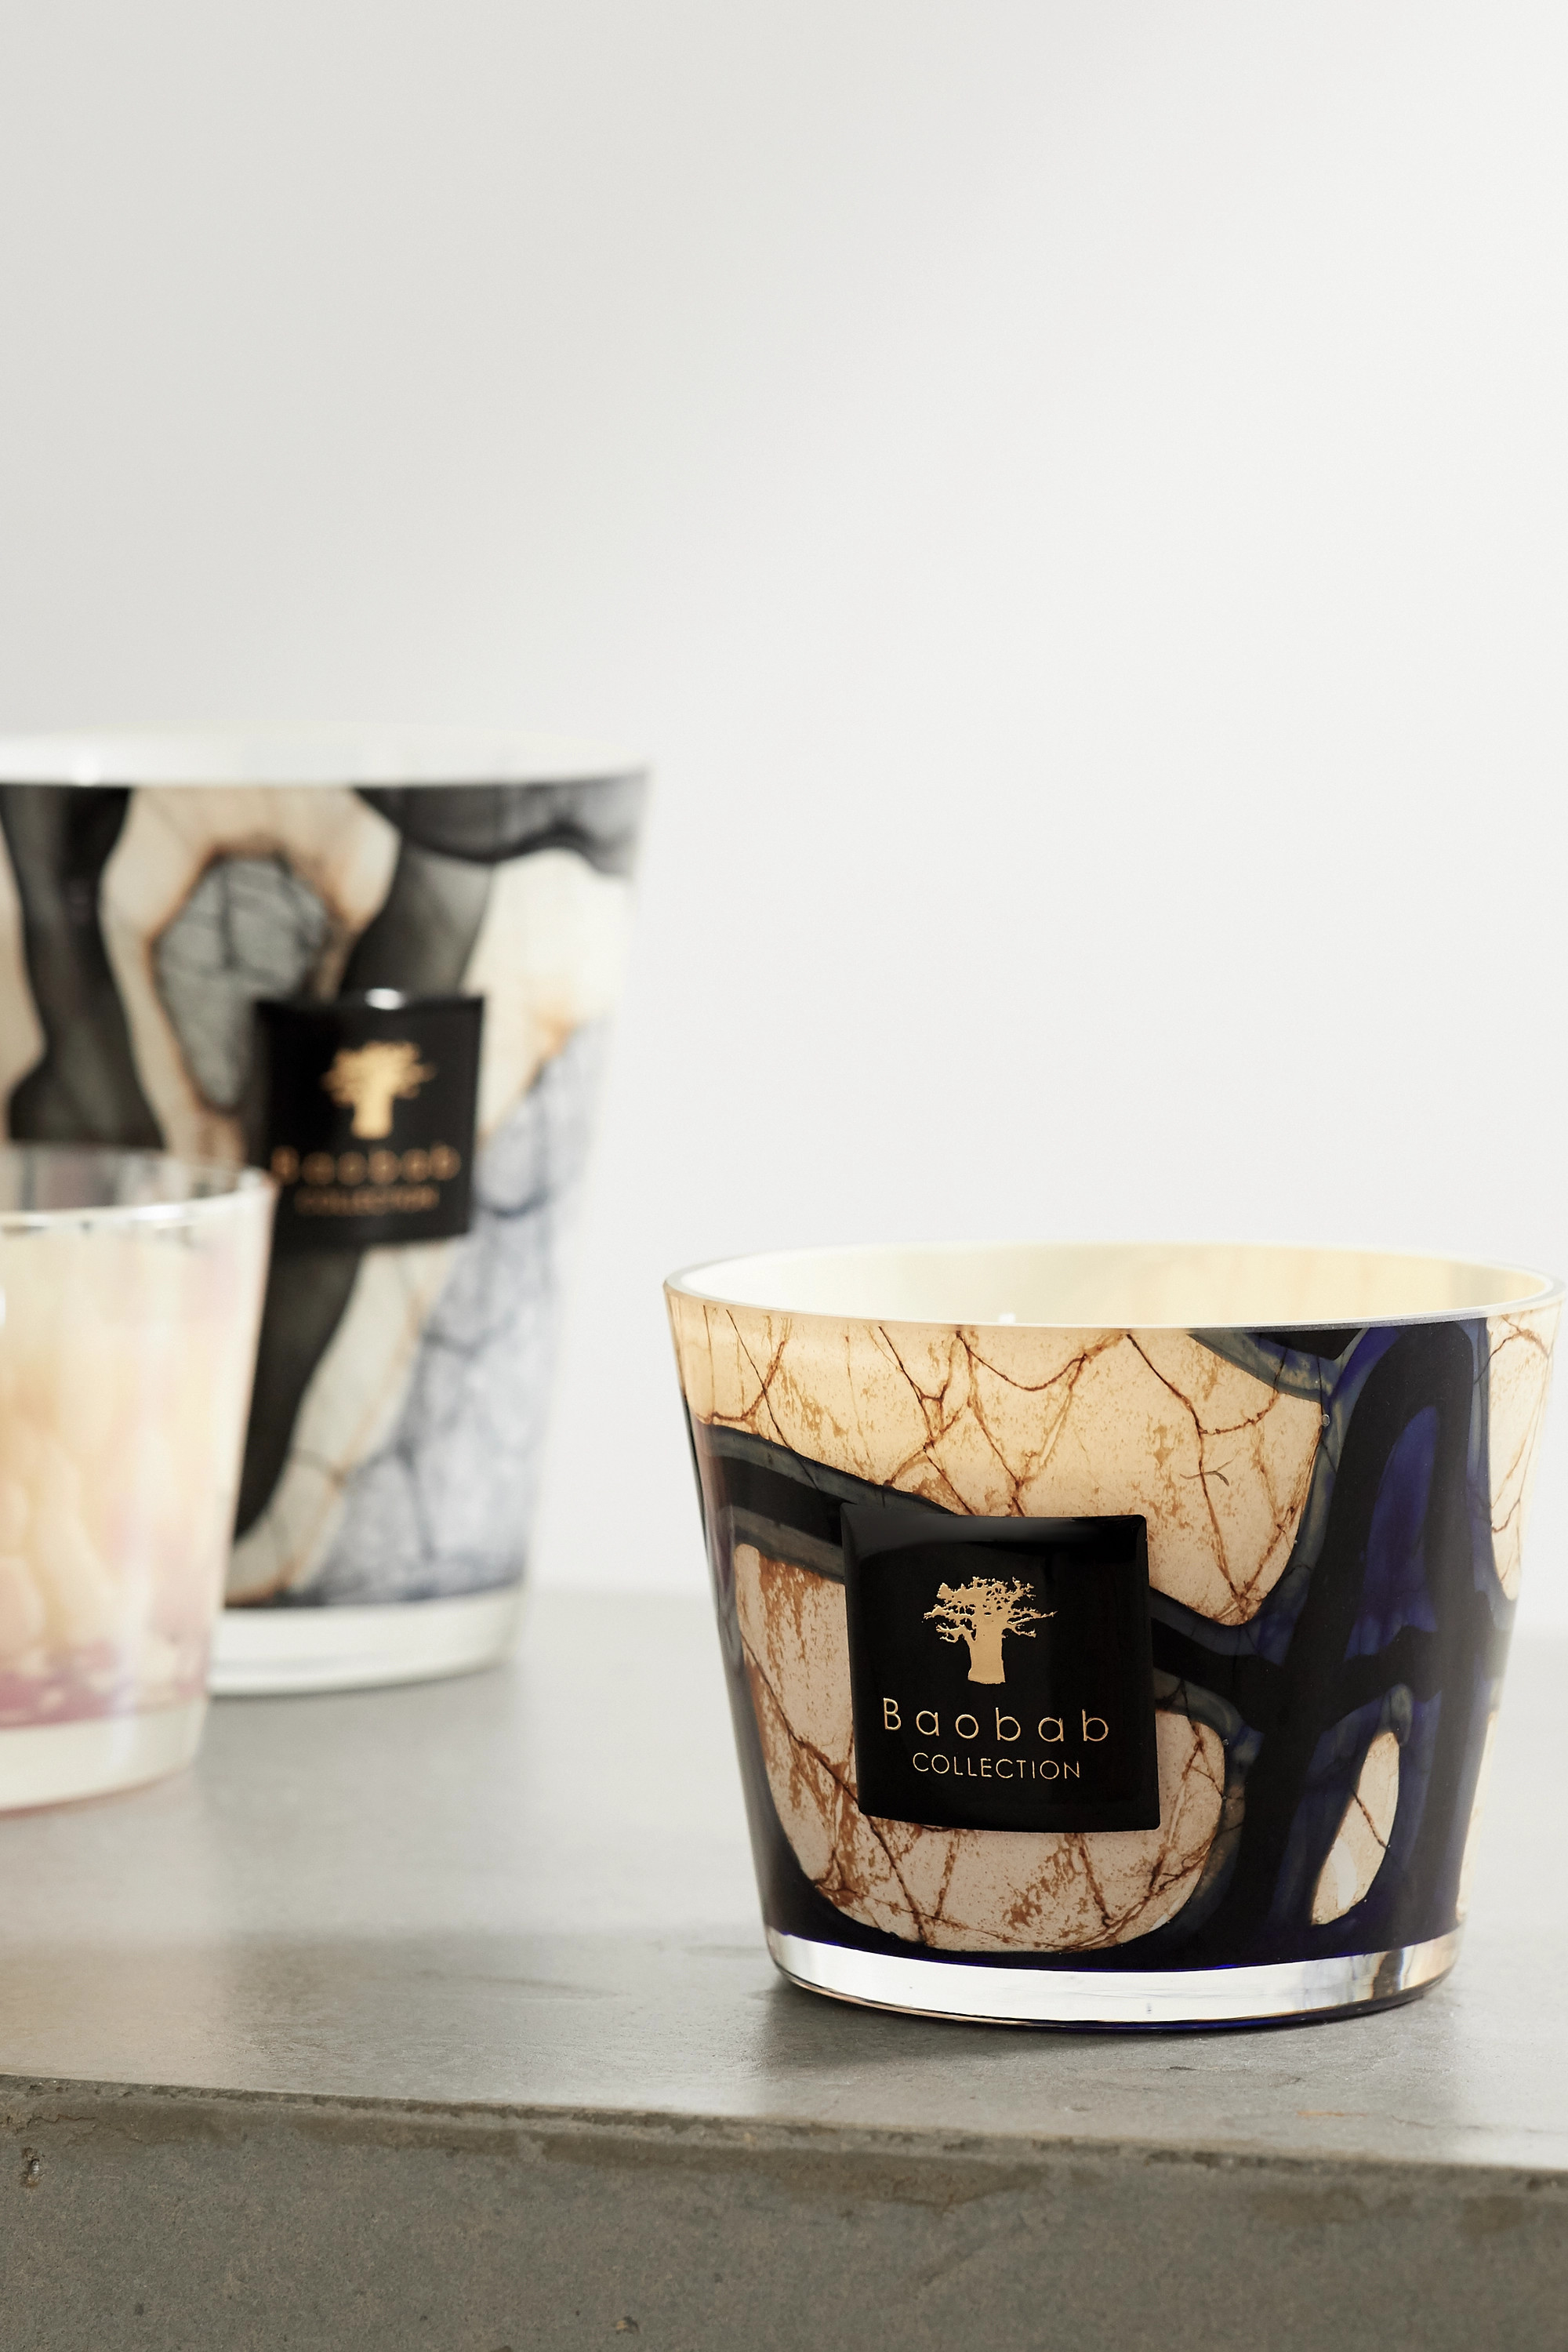 Baobab Collection Stones Lazuli Max 10 scented candle, 1.3kg